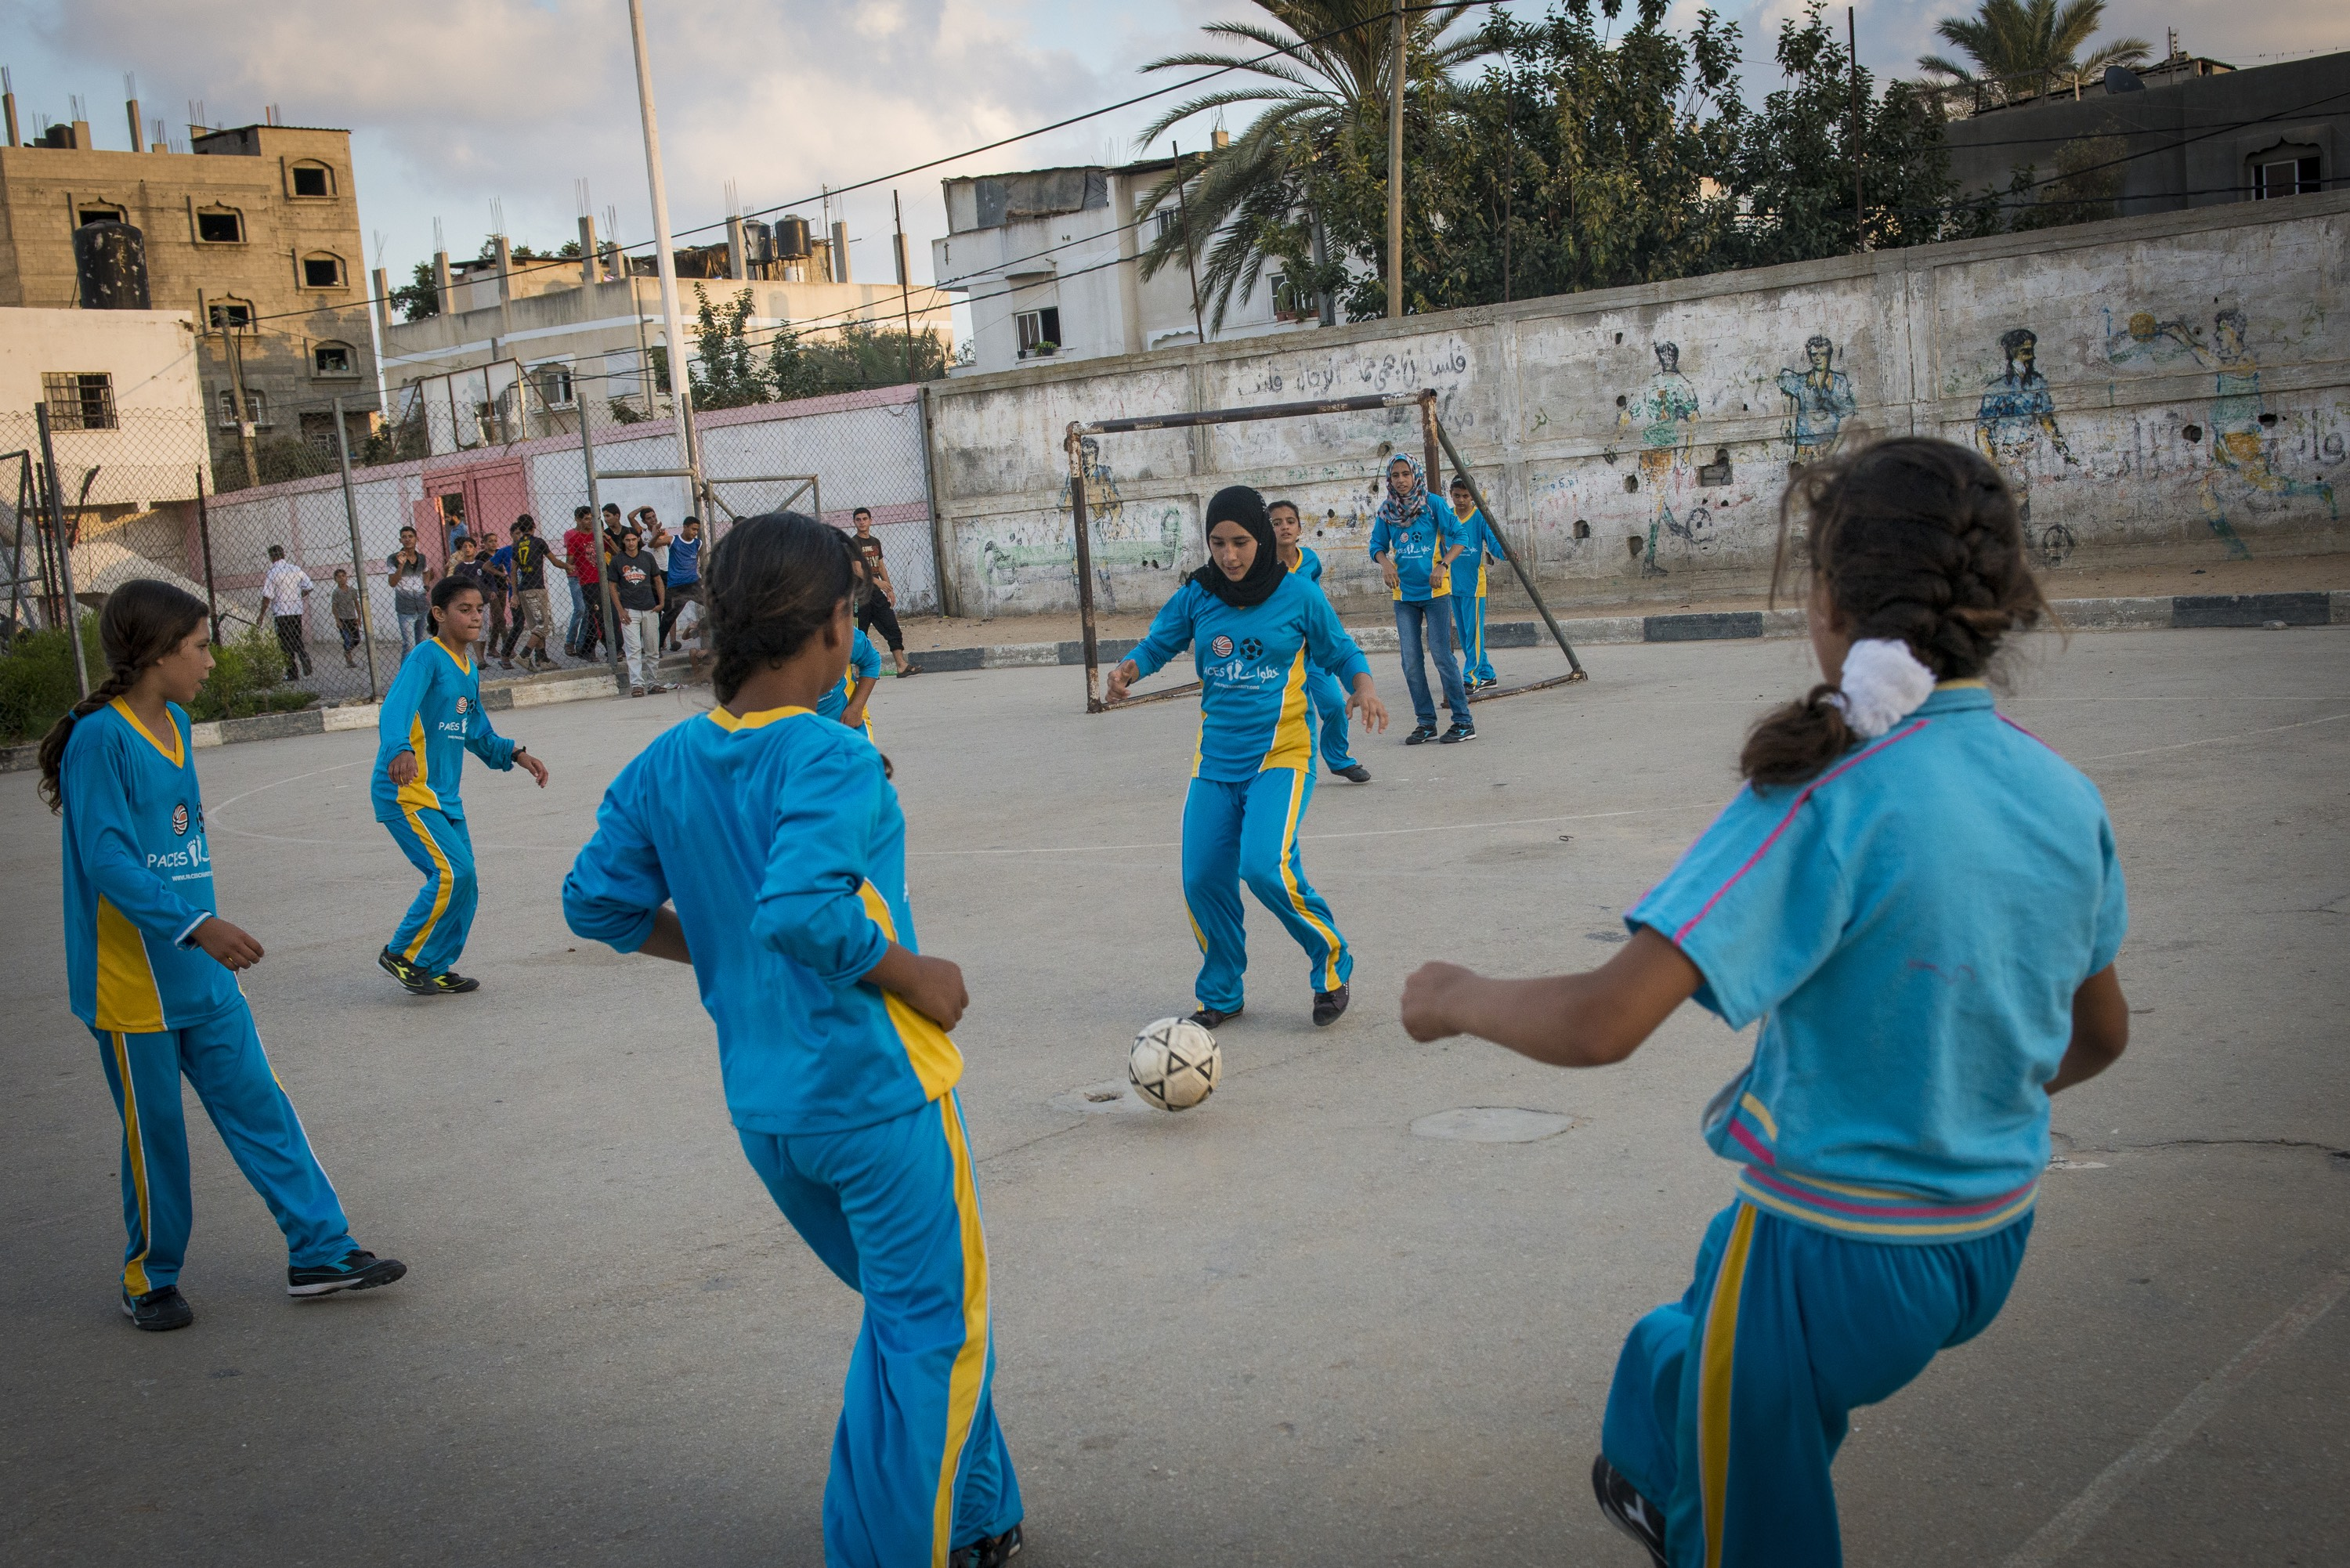 Growing up on the Gaza Strip